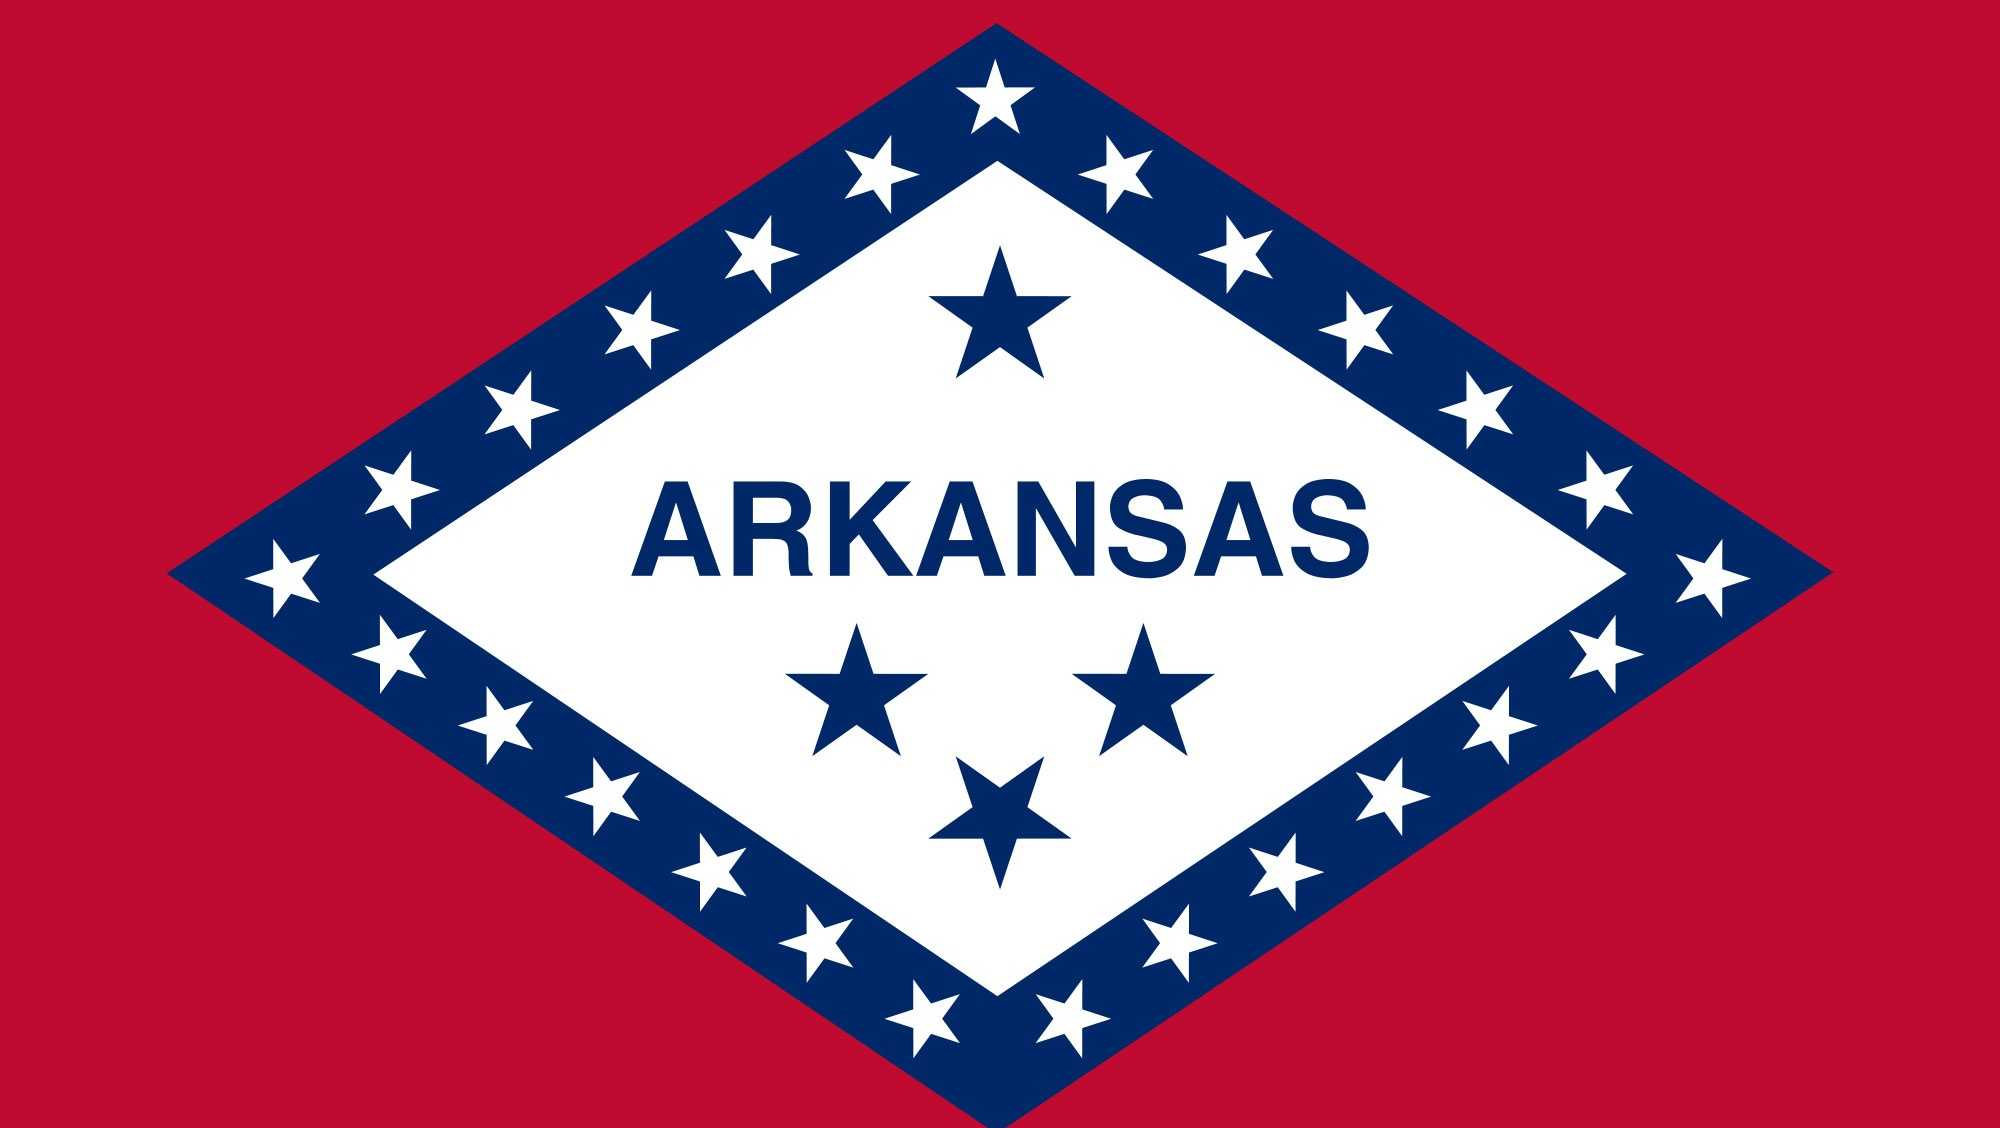 state flag of arkansas